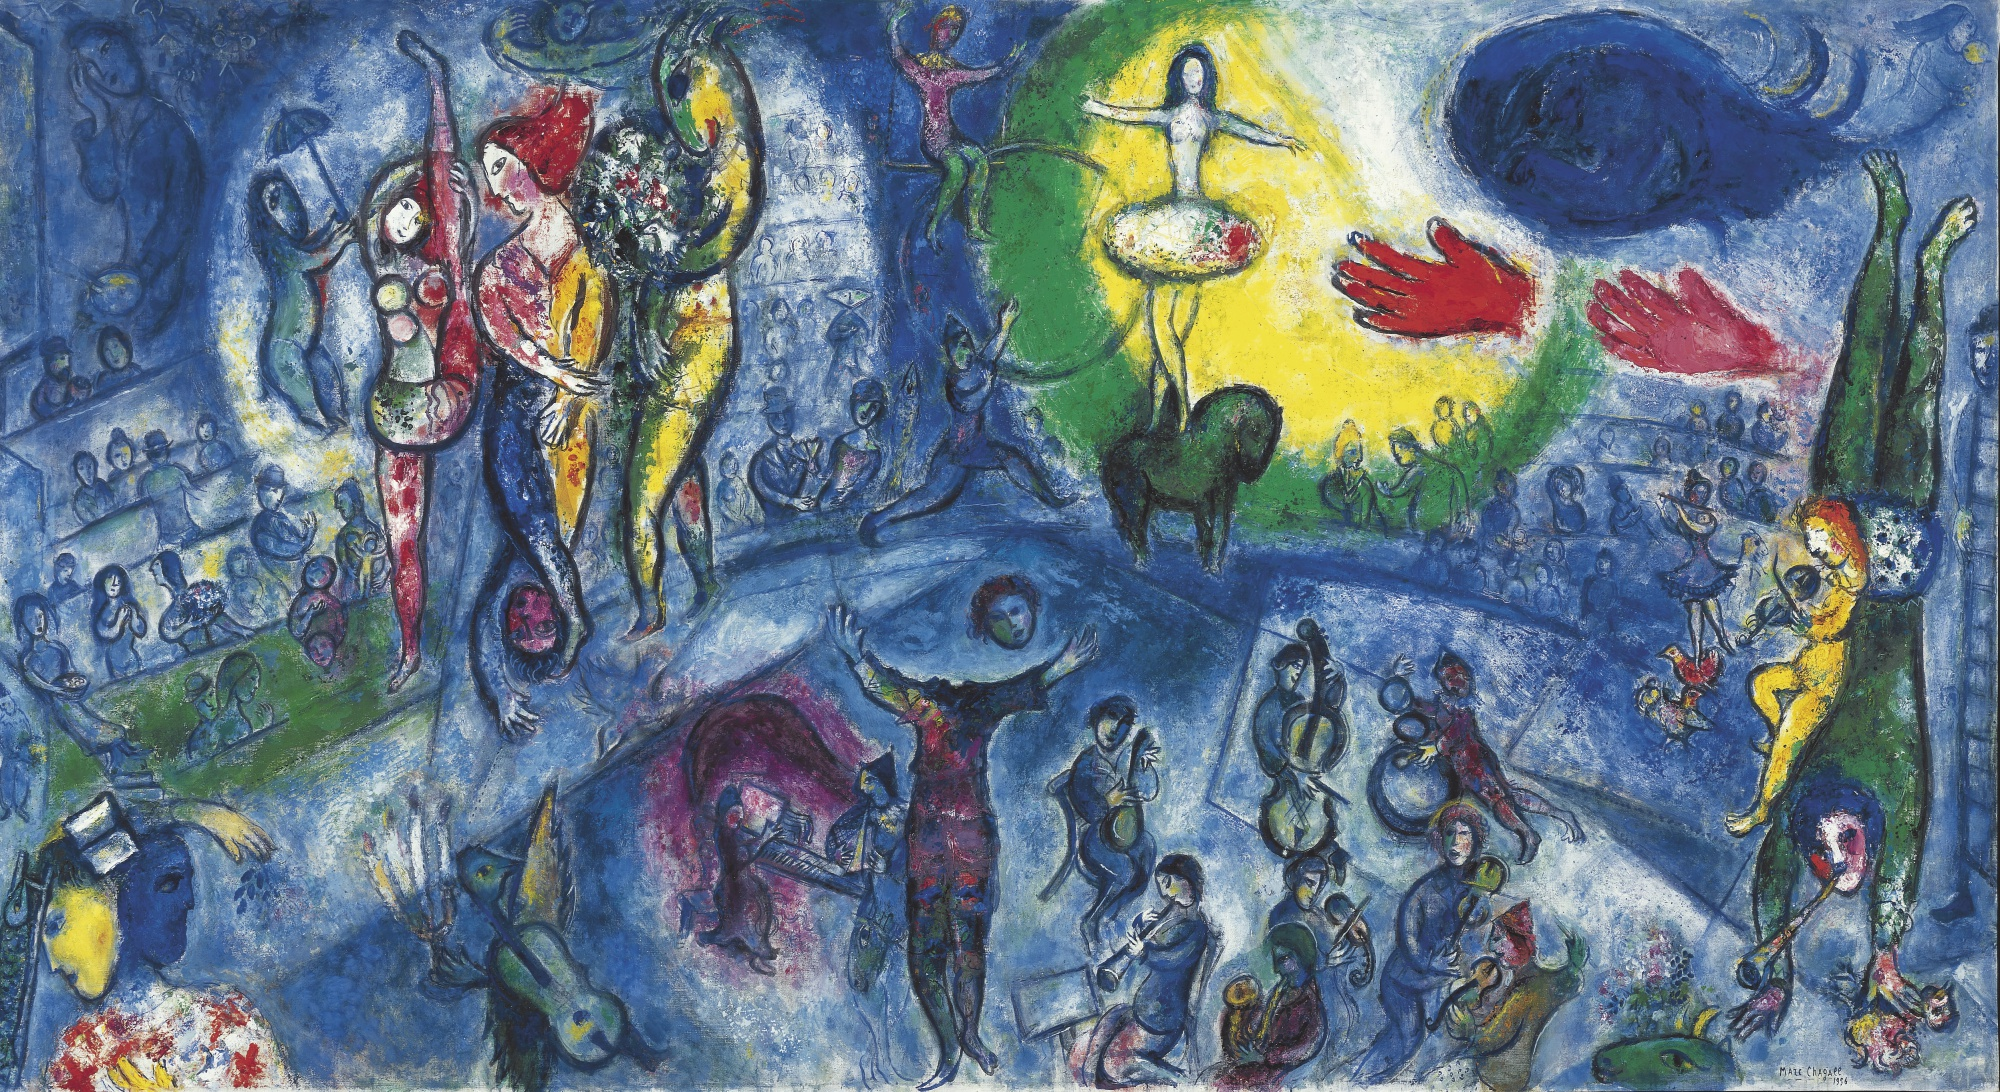 Le Grand Cirque - Marc Chagall